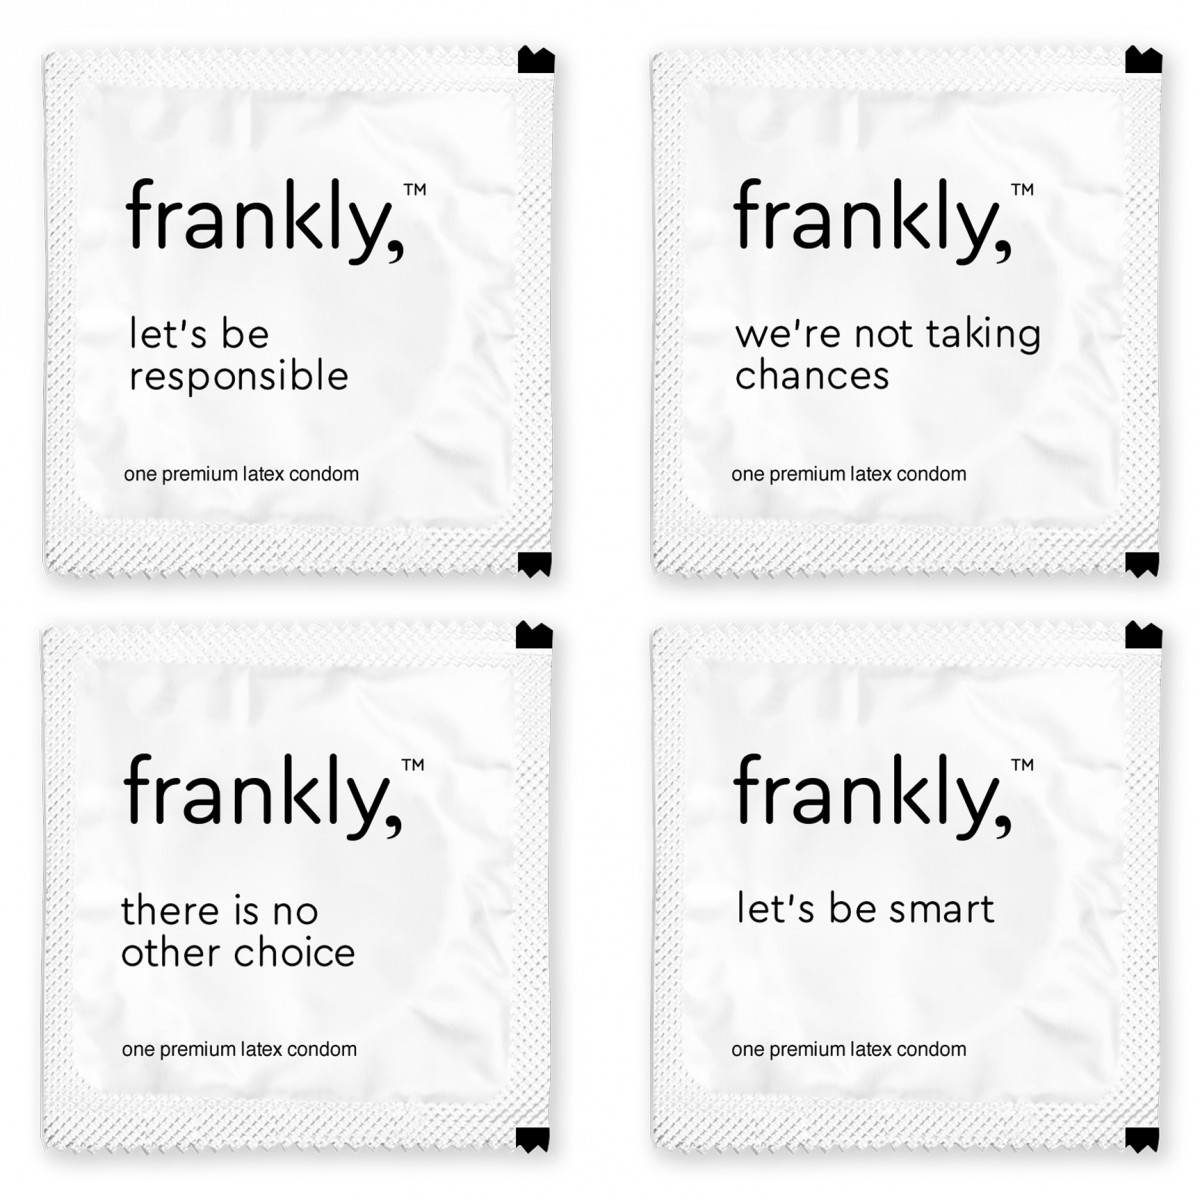 frankly, condoms